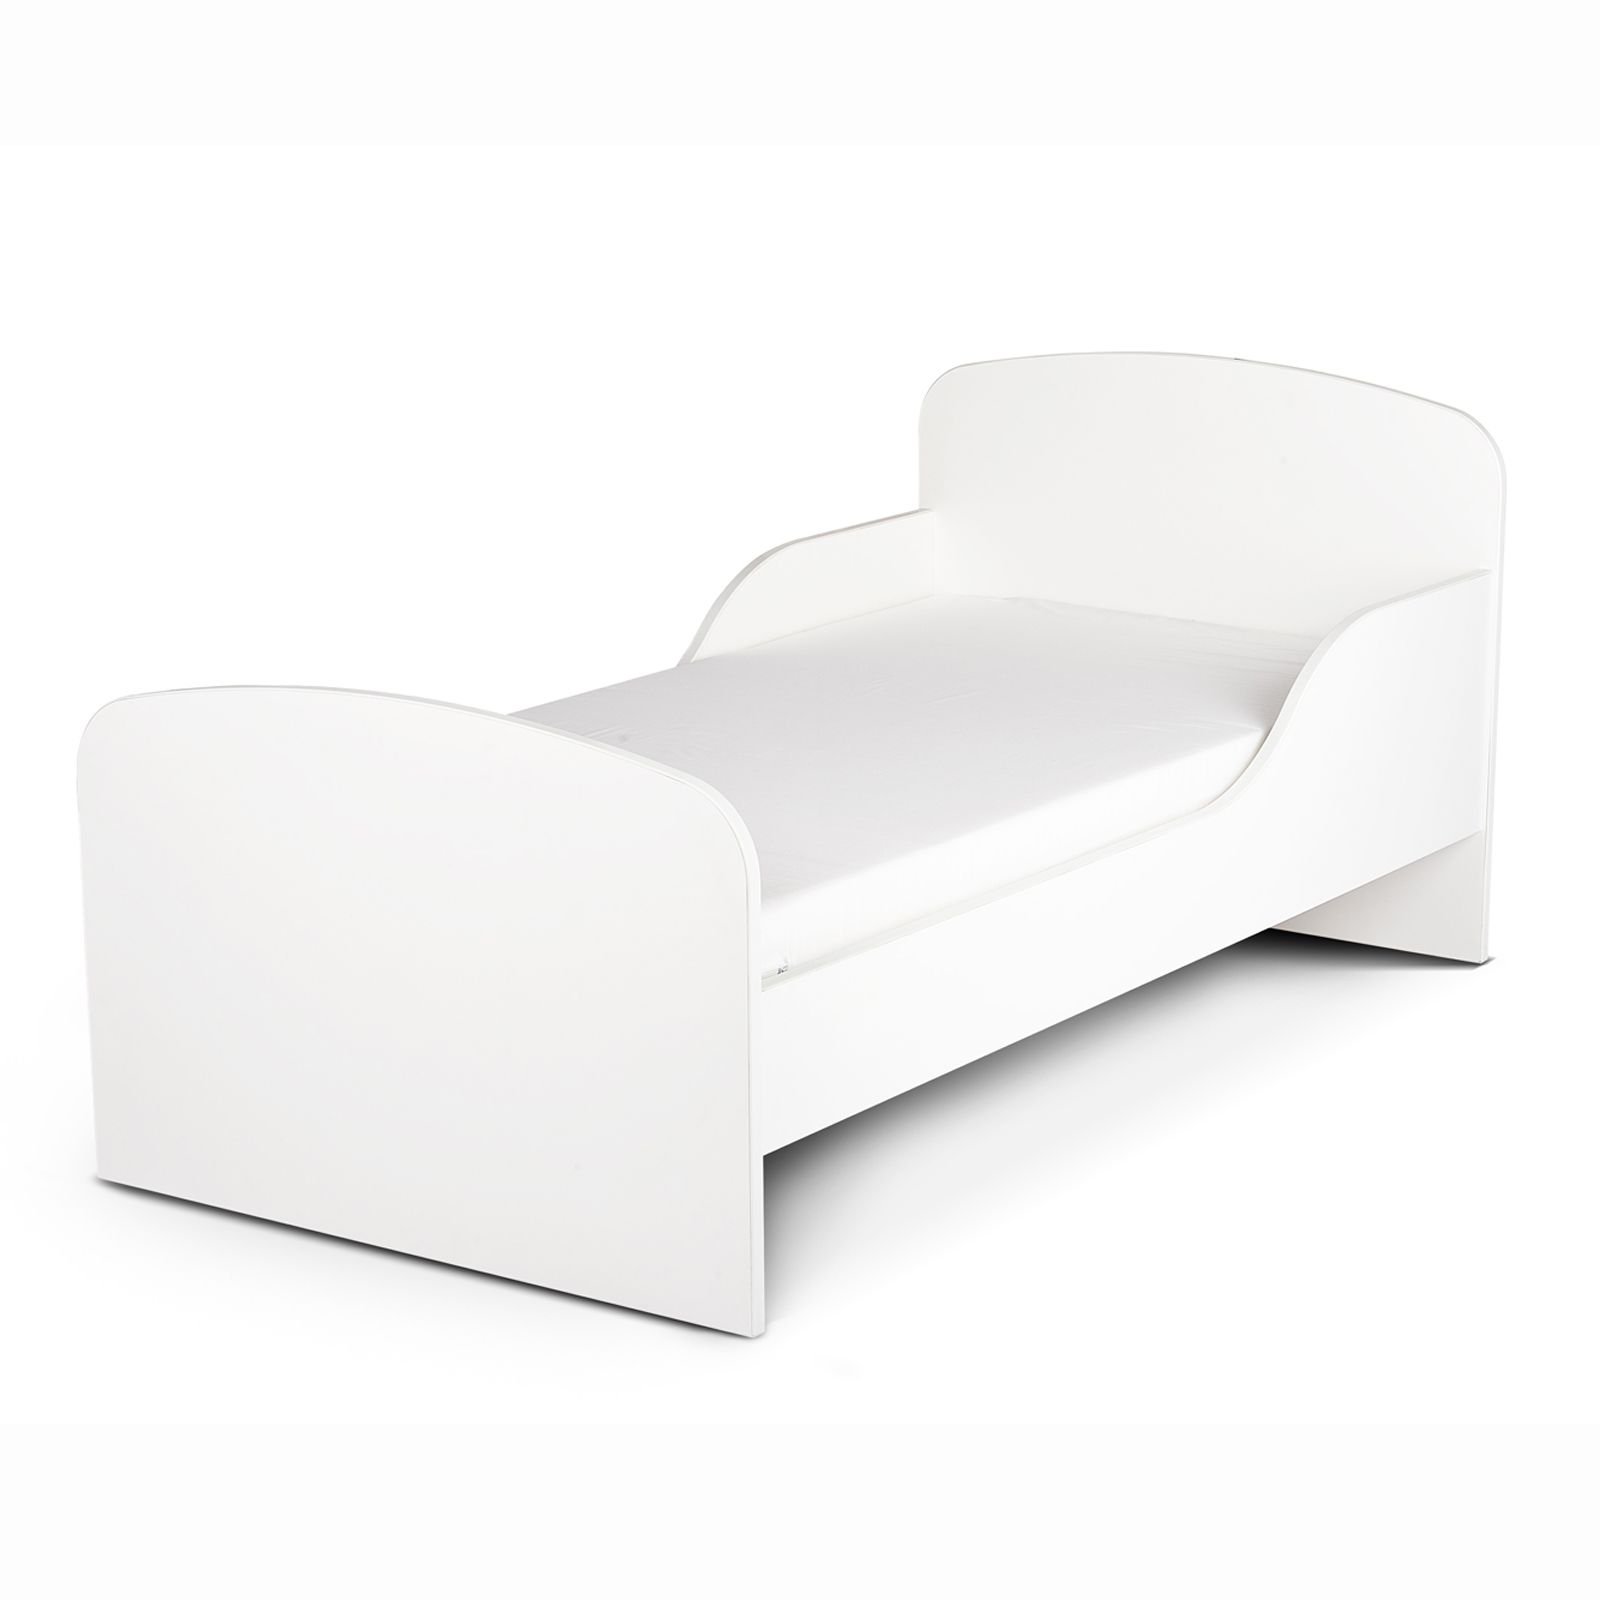 PLAIN WHITE MDF TODDLER BED NEW KIDS BEDROOM